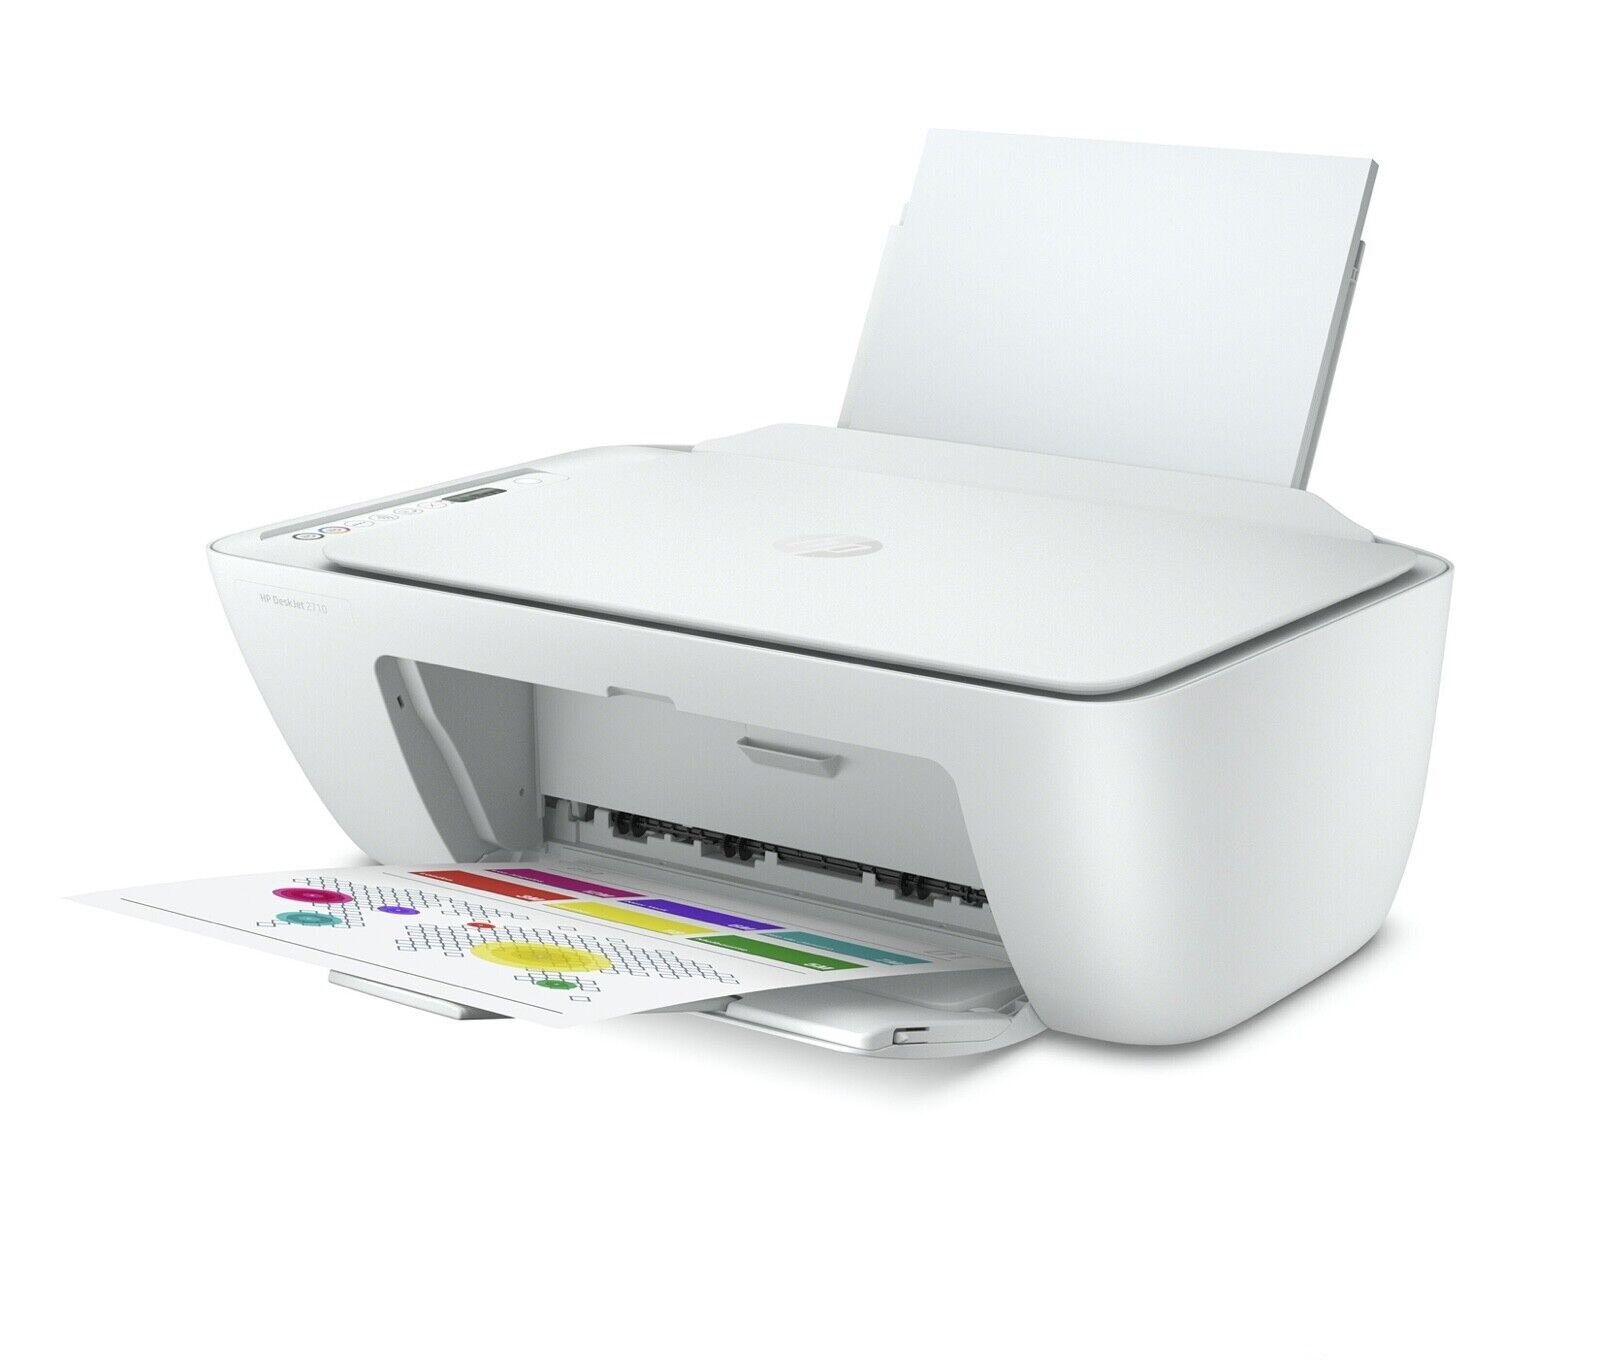 Hp deskjet 2710 all-in-one - imprimante multifonctions jet d'encre couleur a4 -